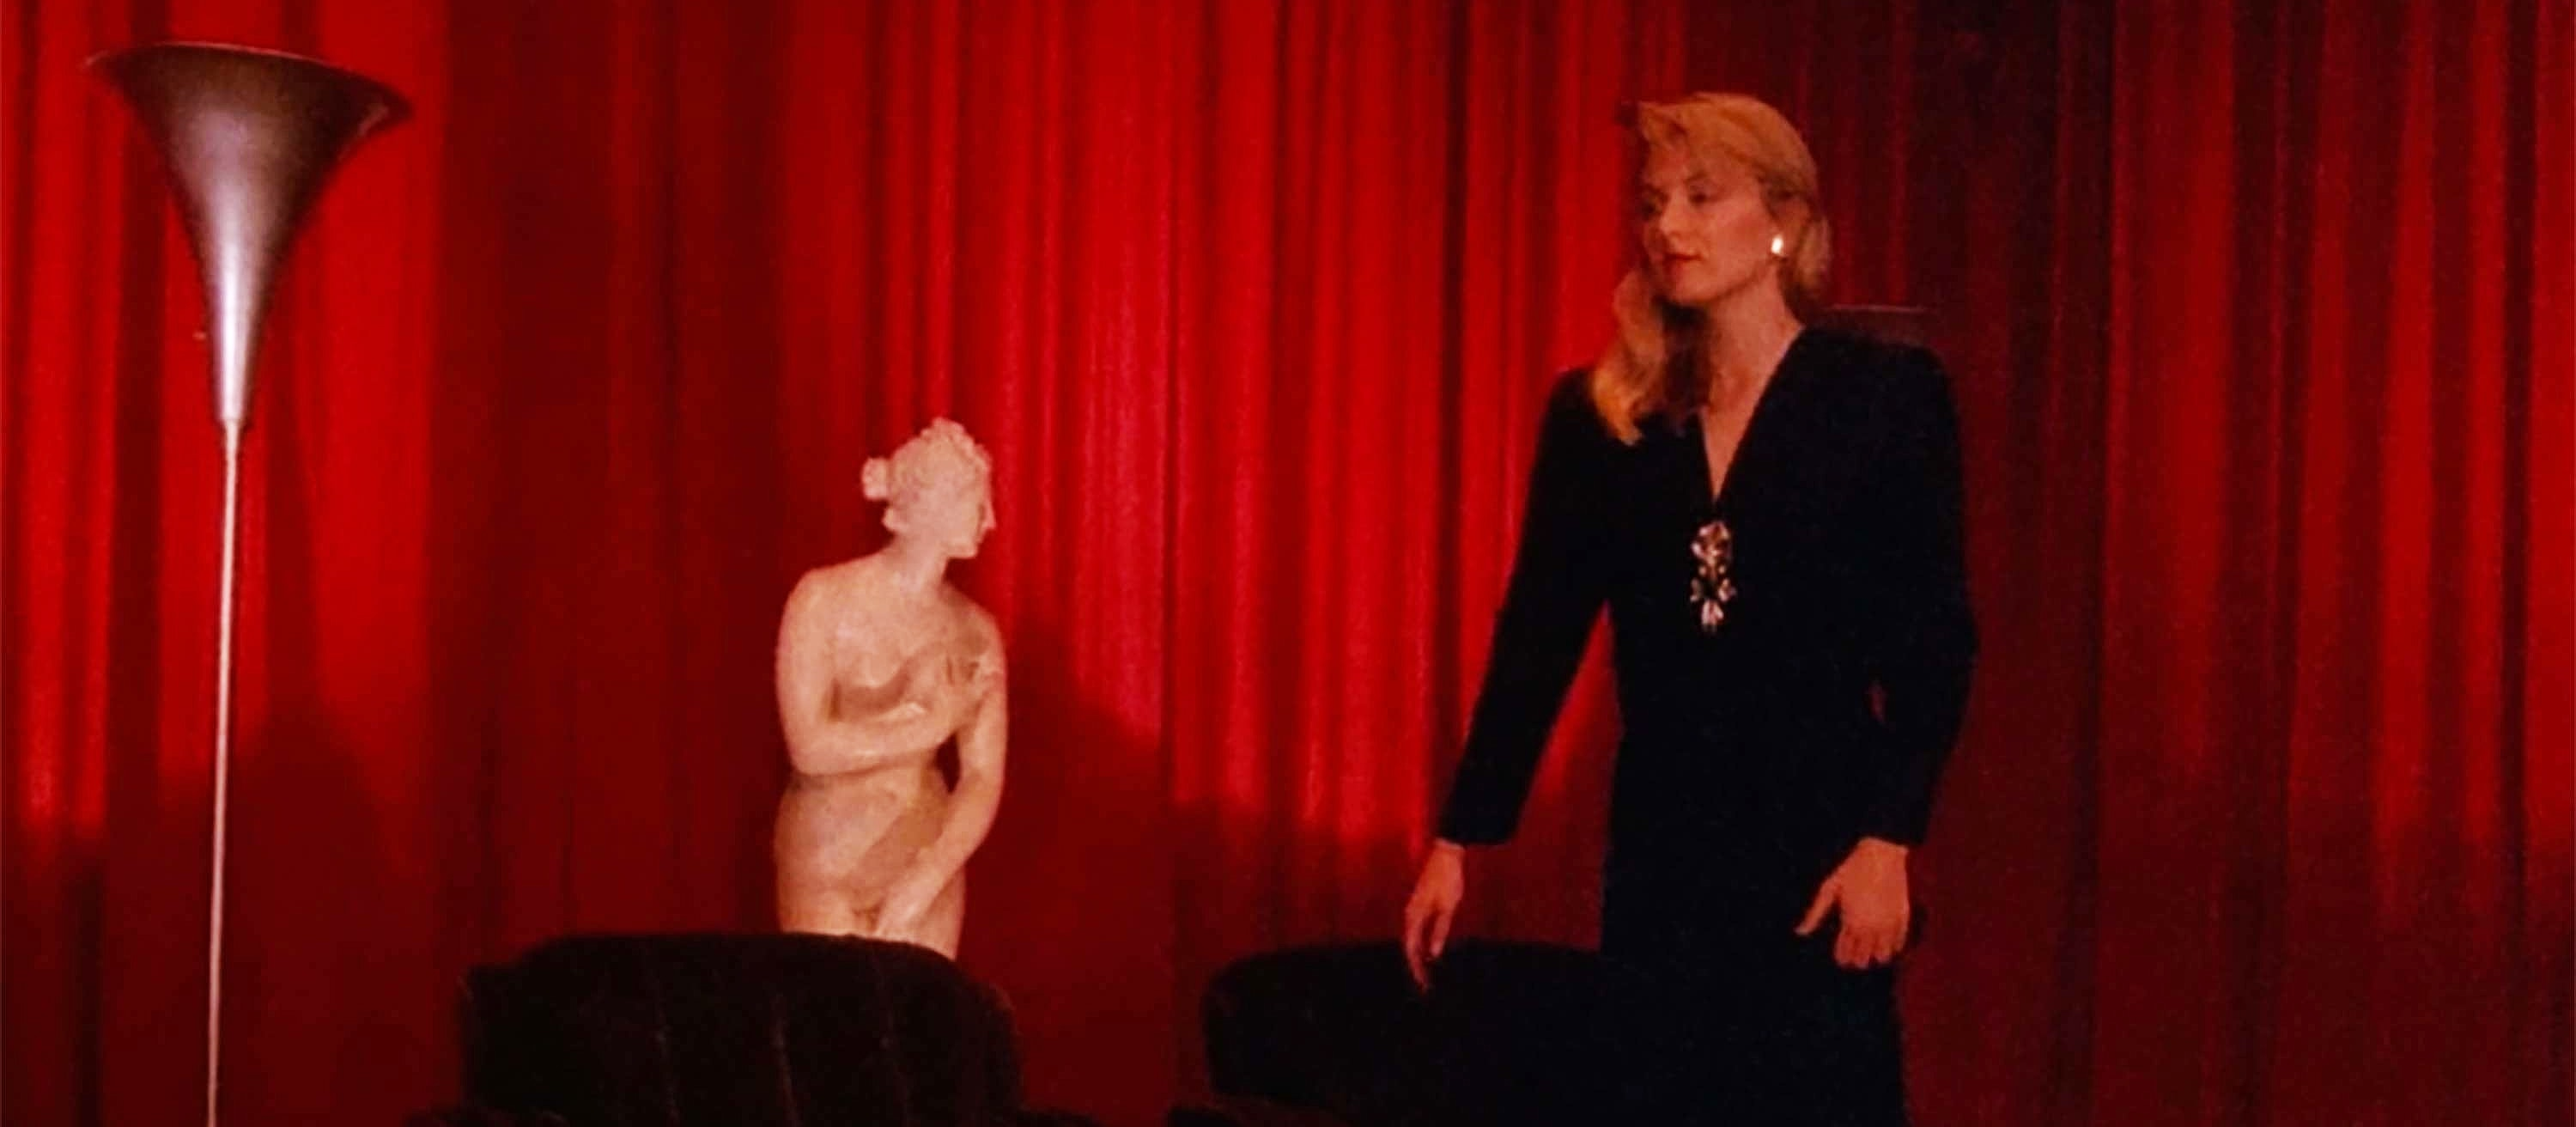 Laura Palmer Black Lodge Halloween Twin Peaks costume